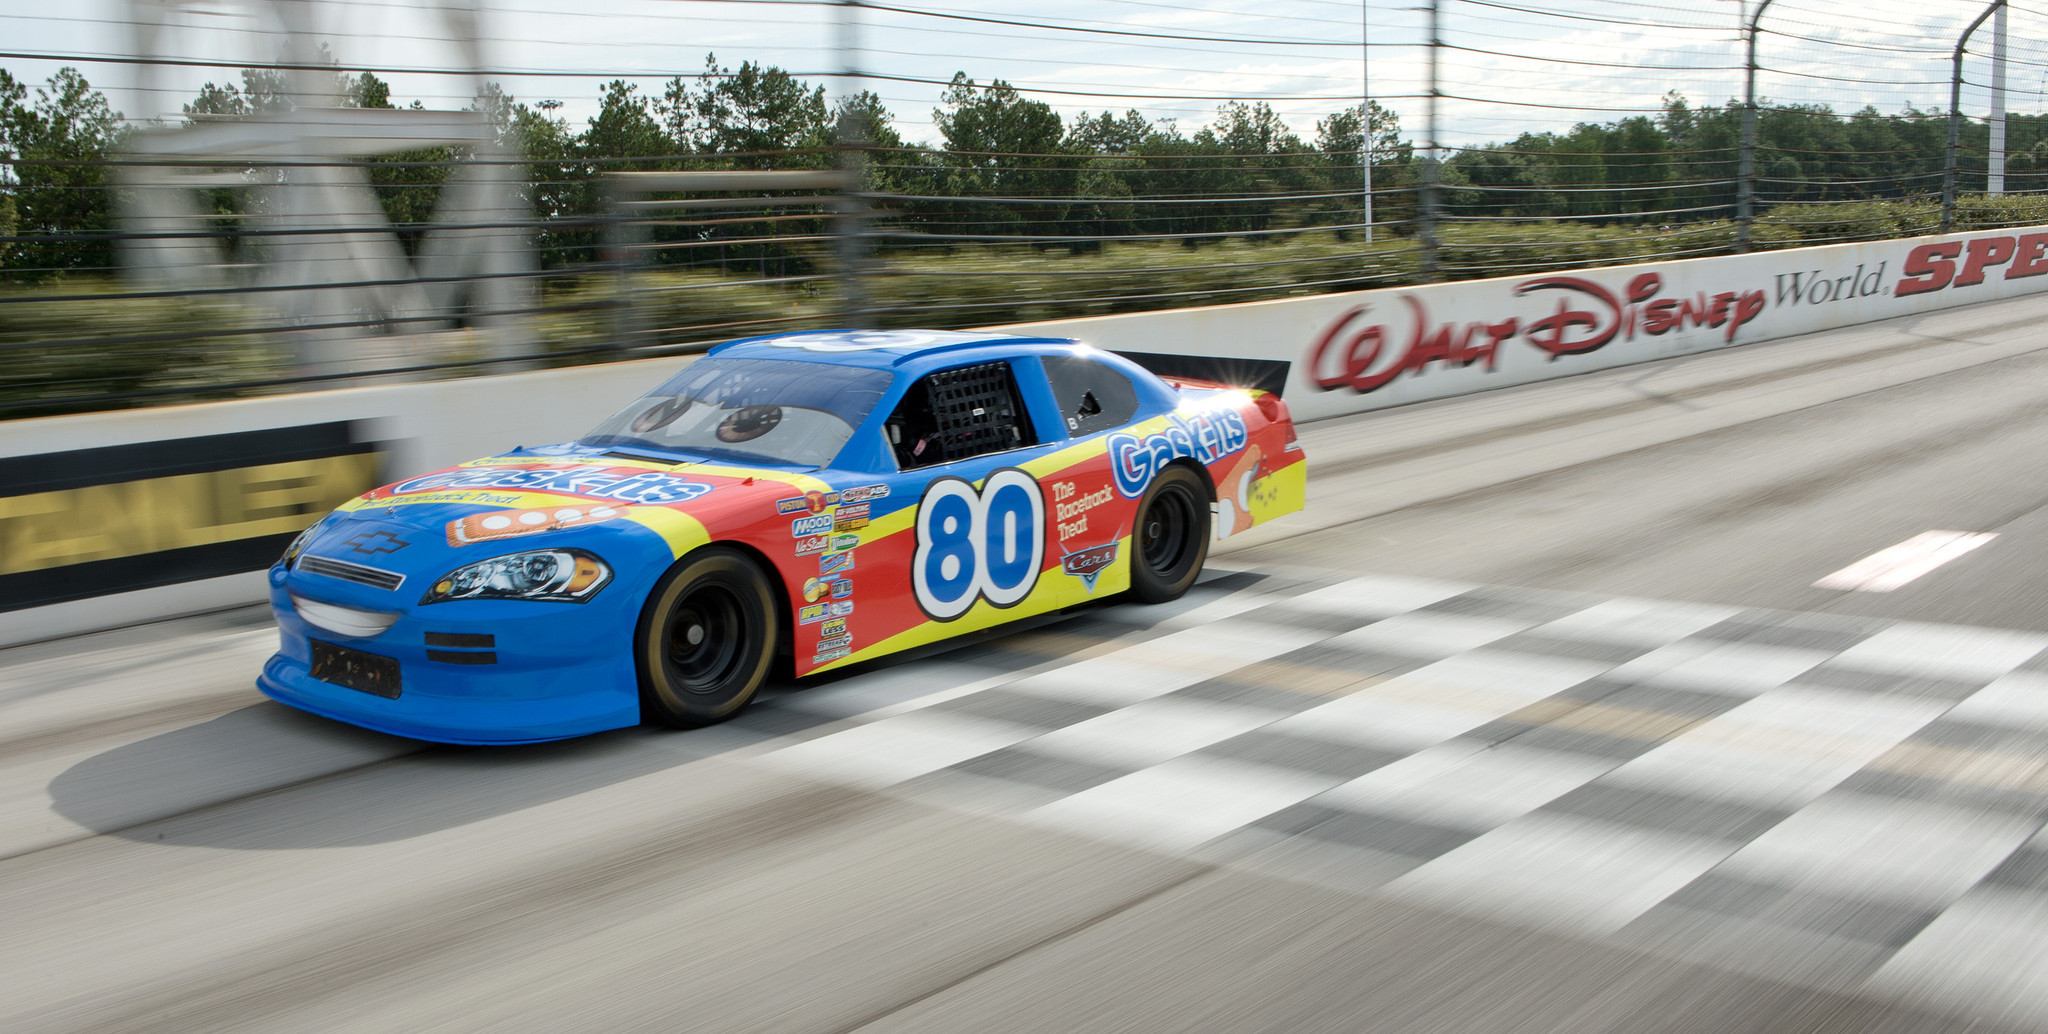 Richard Petty Driving Experience Closing At Disney World Orlando